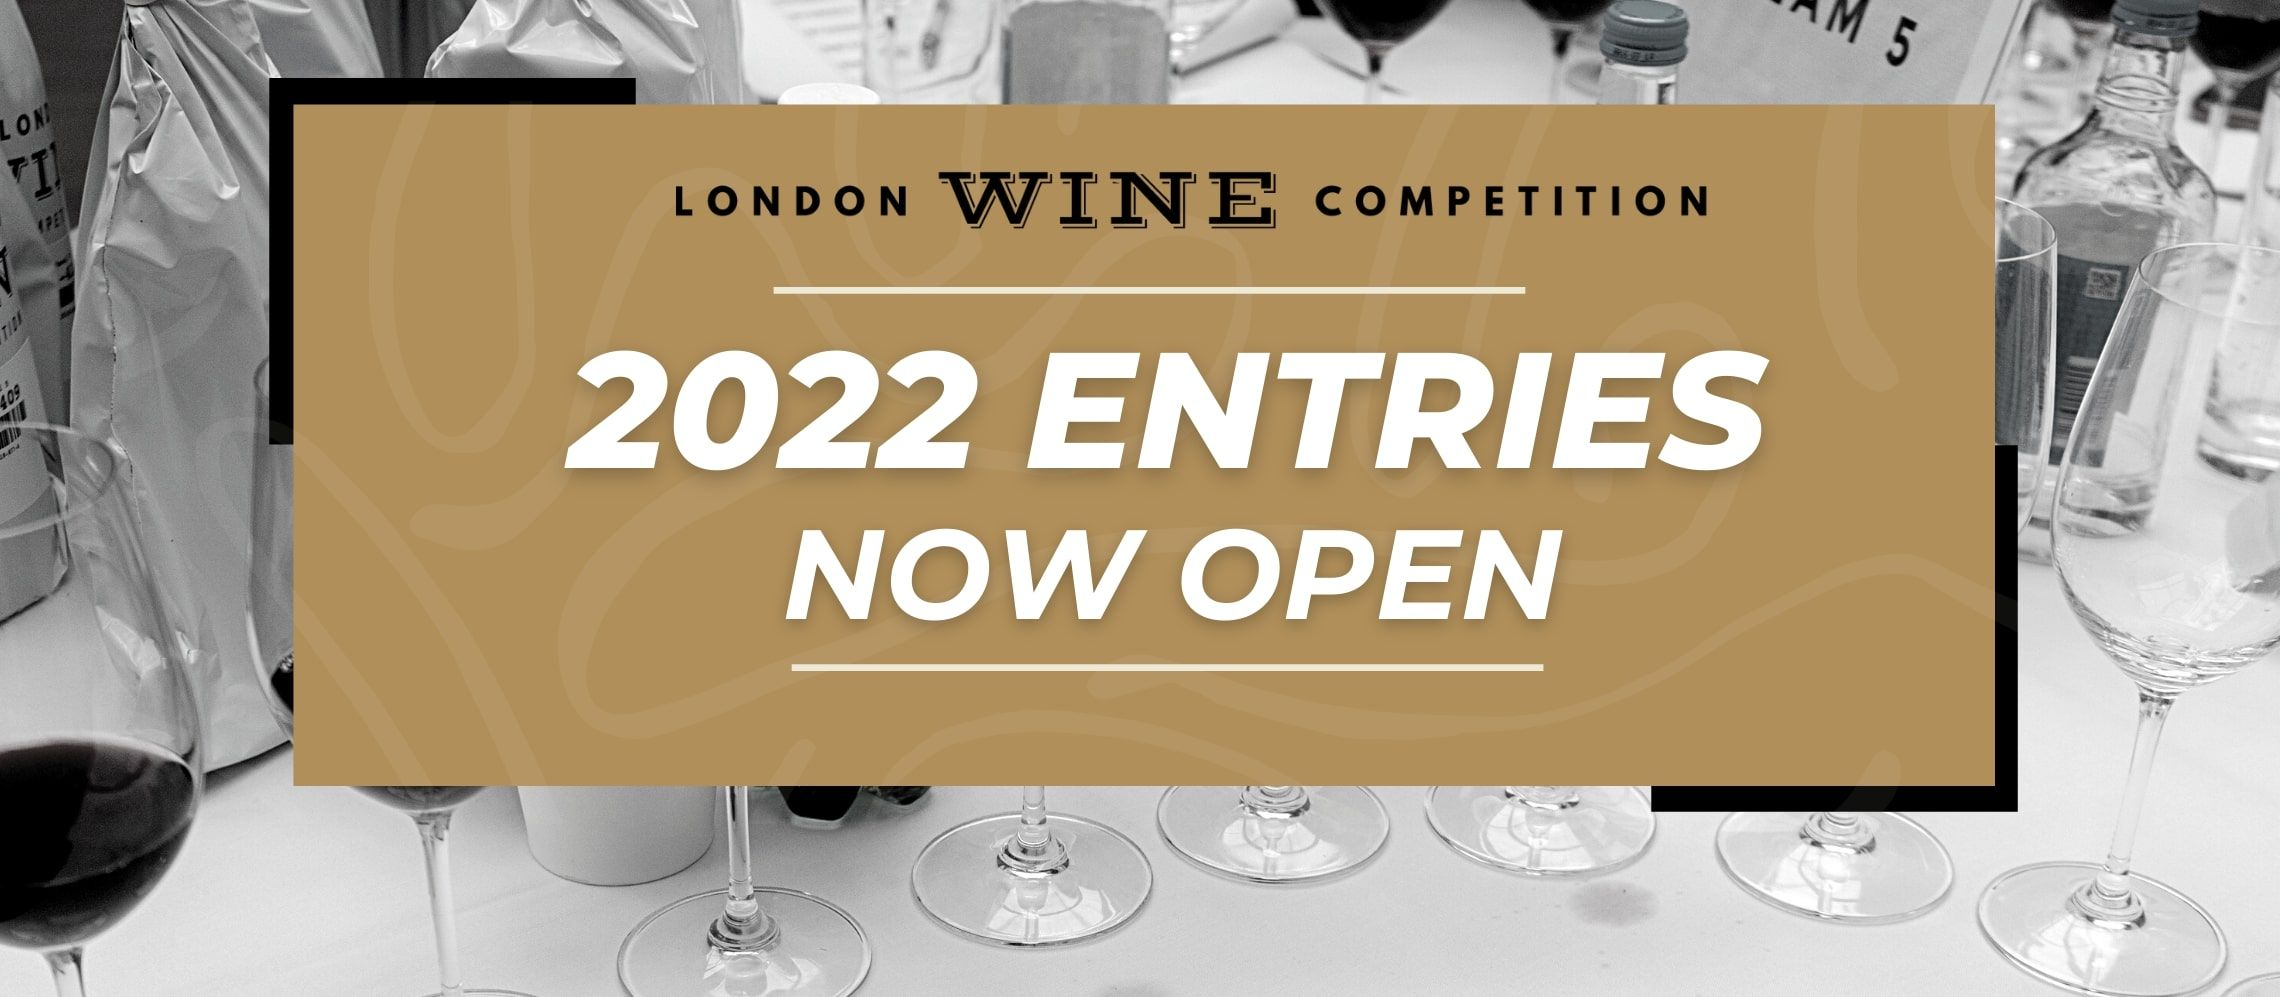 Photo for: London Wine Competition 2022 - Submission Now Open